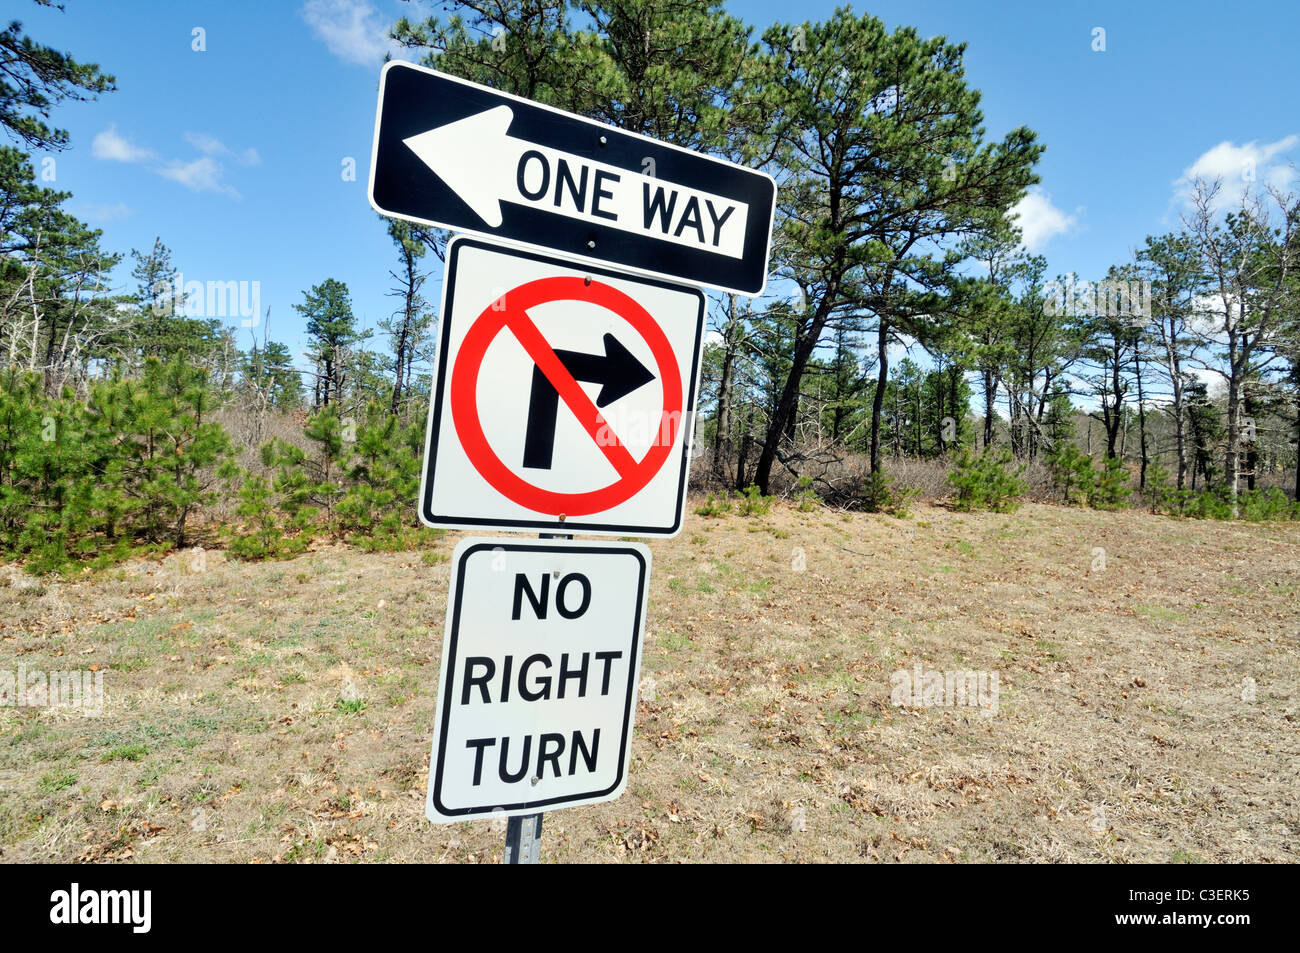 confusing traffic signs posted on side of road on a clear